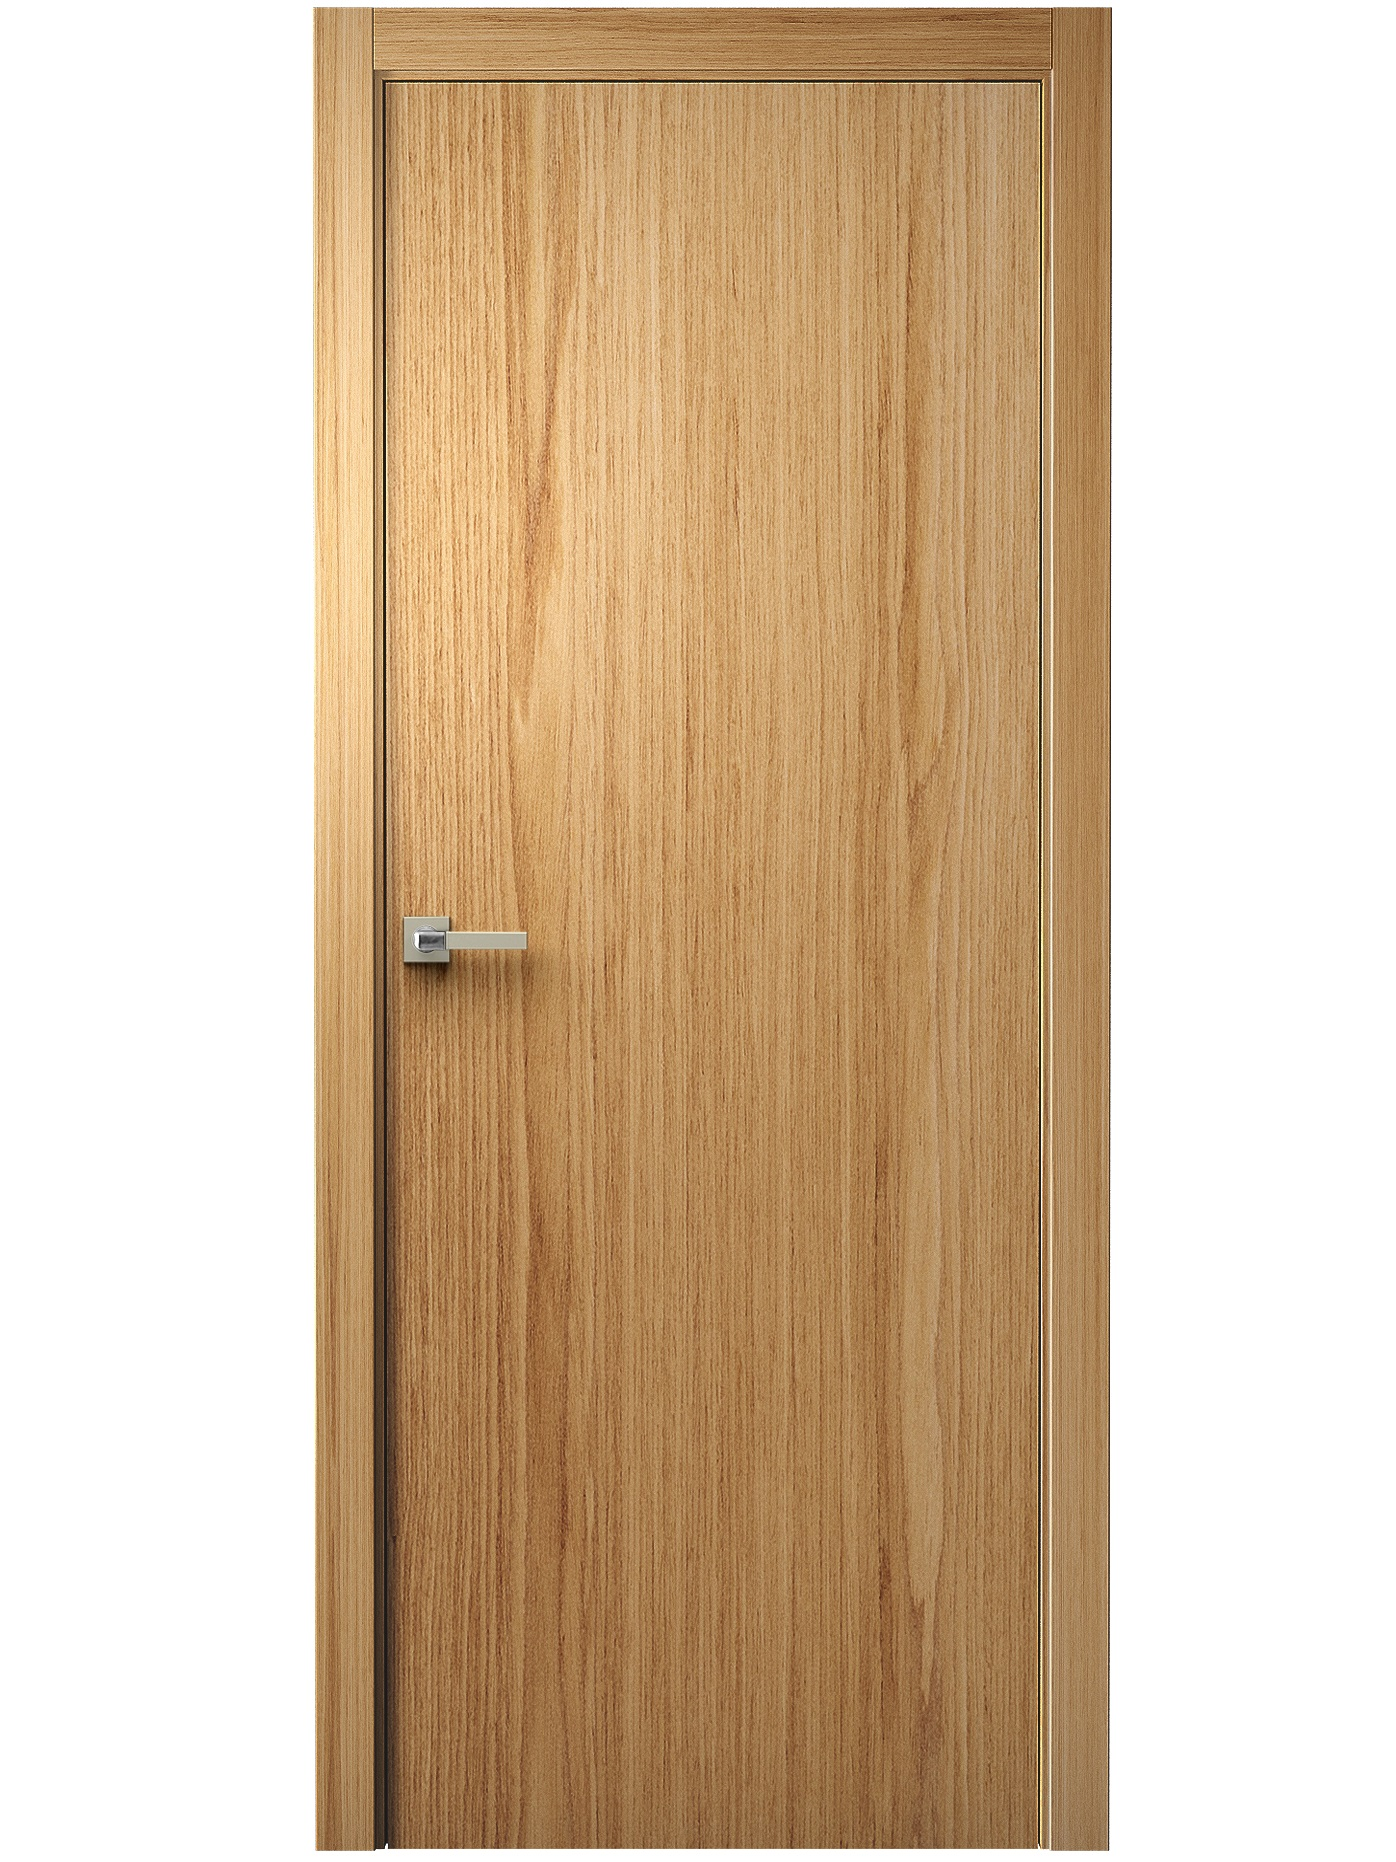 Image Unica Interior Door Natural Oak 0